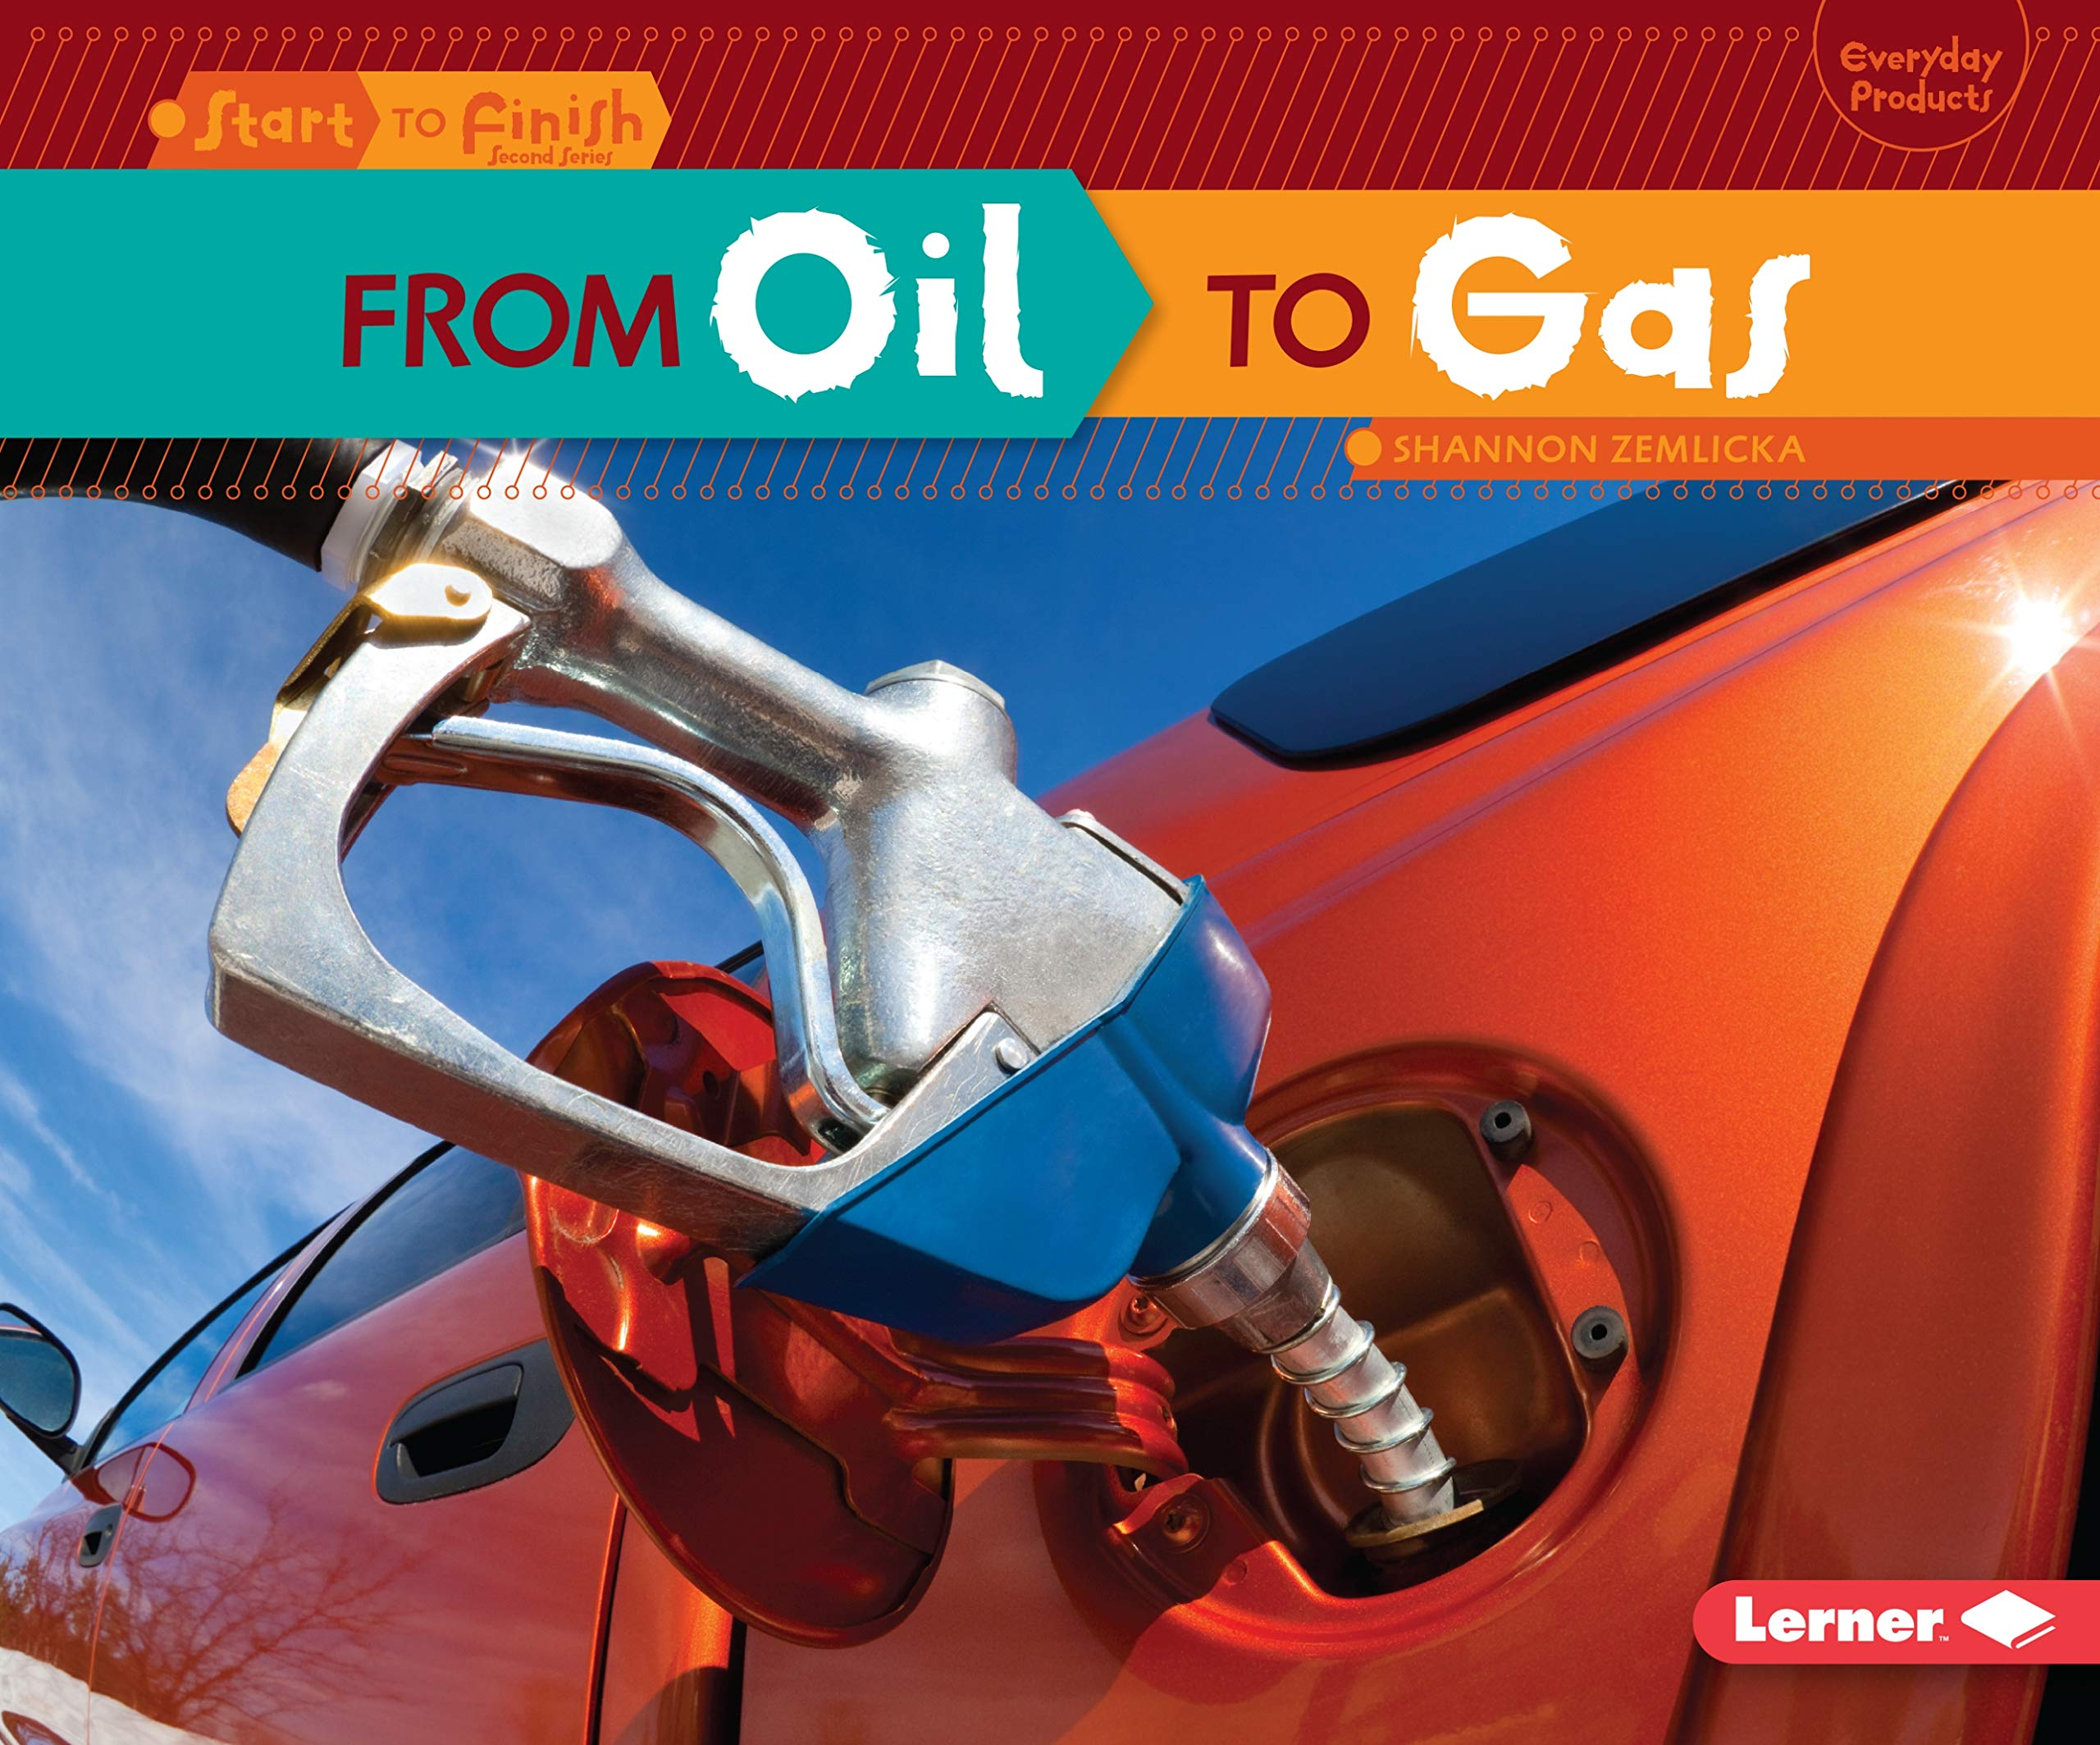 From Oil to Gas (Start to Finish, Second Series: Everyday Products) pdf